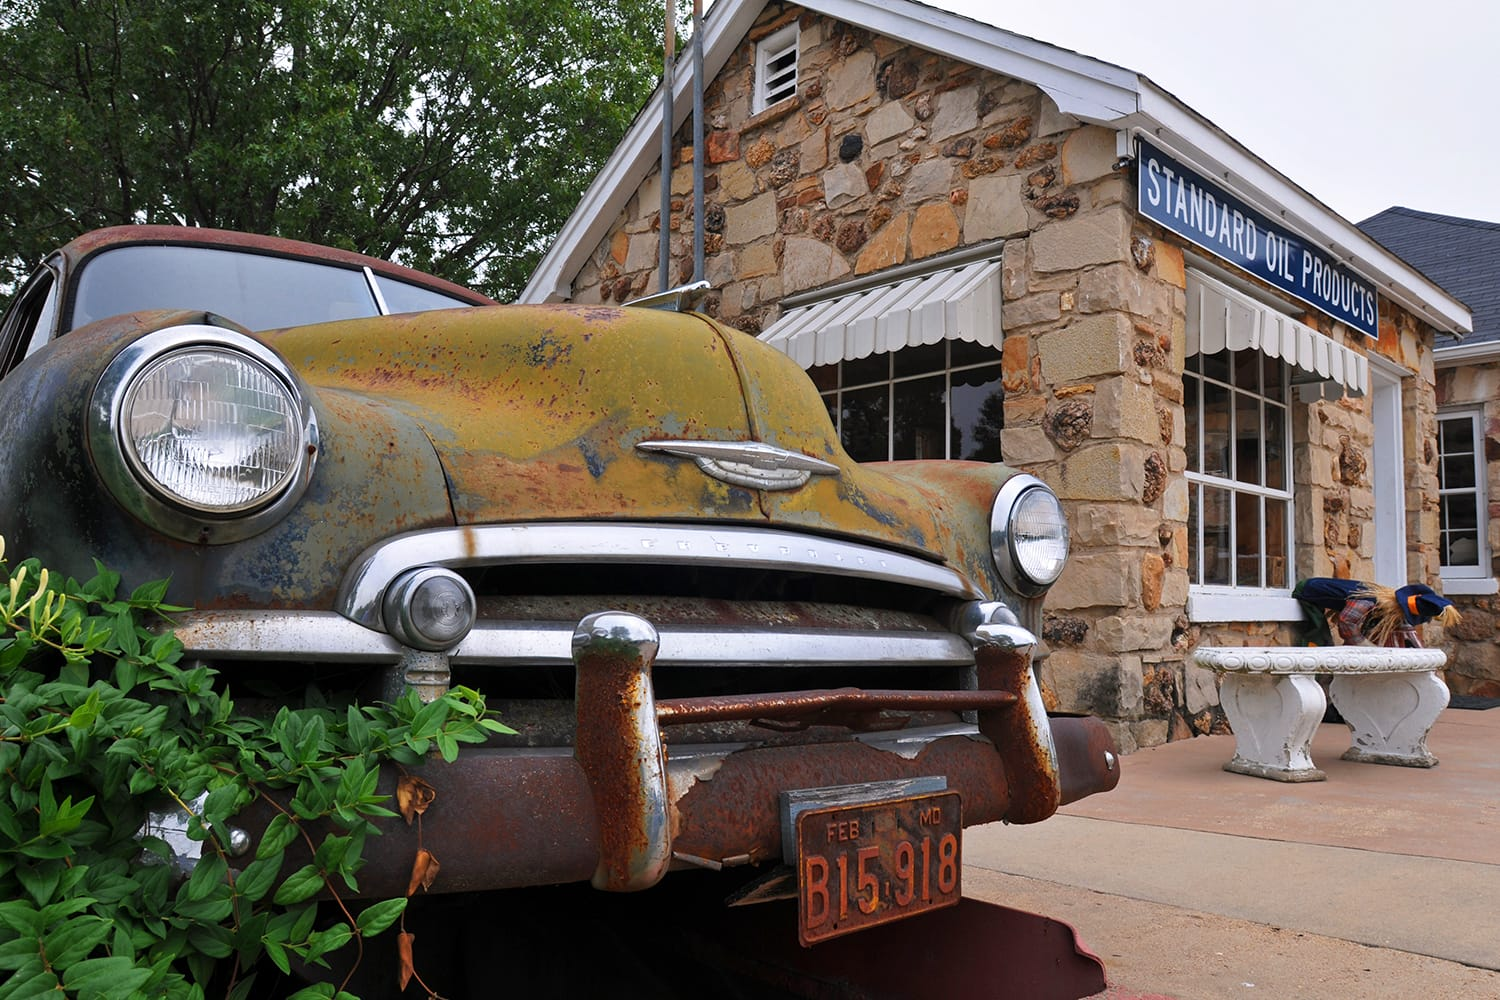 An old Chevrolet automobile sits near the former service station at the Wagon Wheel Motel, a historic landmark on Route 66 in Cuba, Missouri, USA